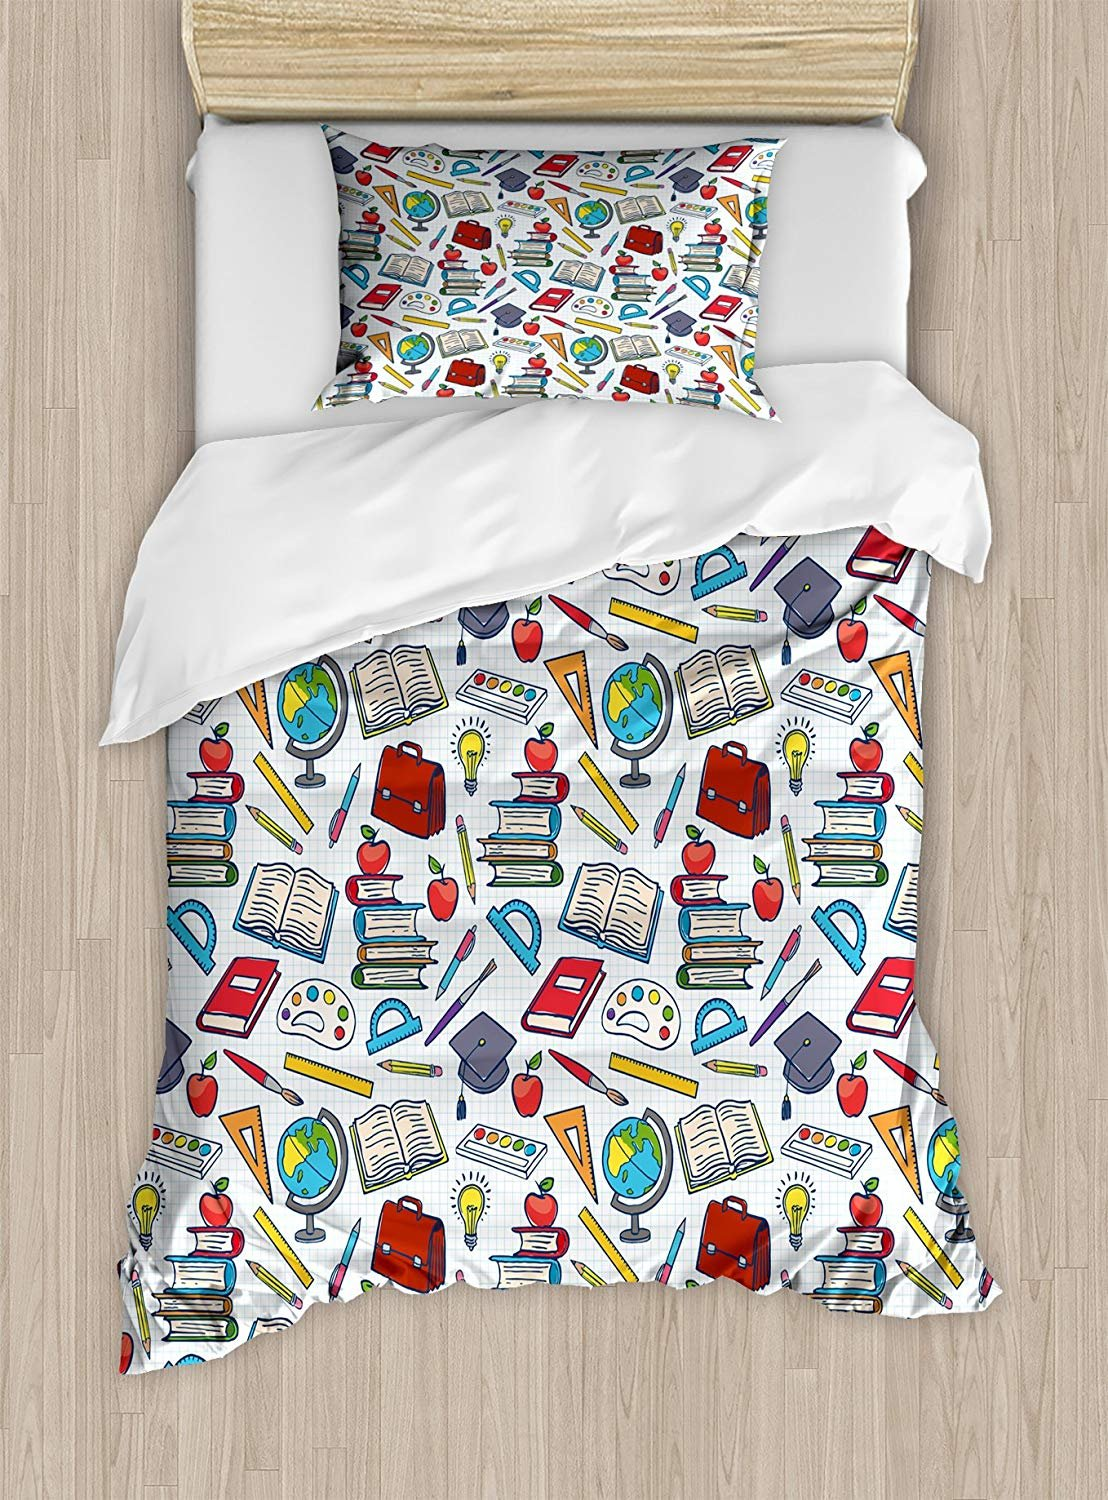 Luck Sky Kids Duvet Cover Set for Child, Elementary School Theme Student Supplies Globe Paints and Brushes Books Education, 4 Piece Bedding Set Twin Size, 1 Duvet Cover 1 Flat Sheet and 2 Pillowcases